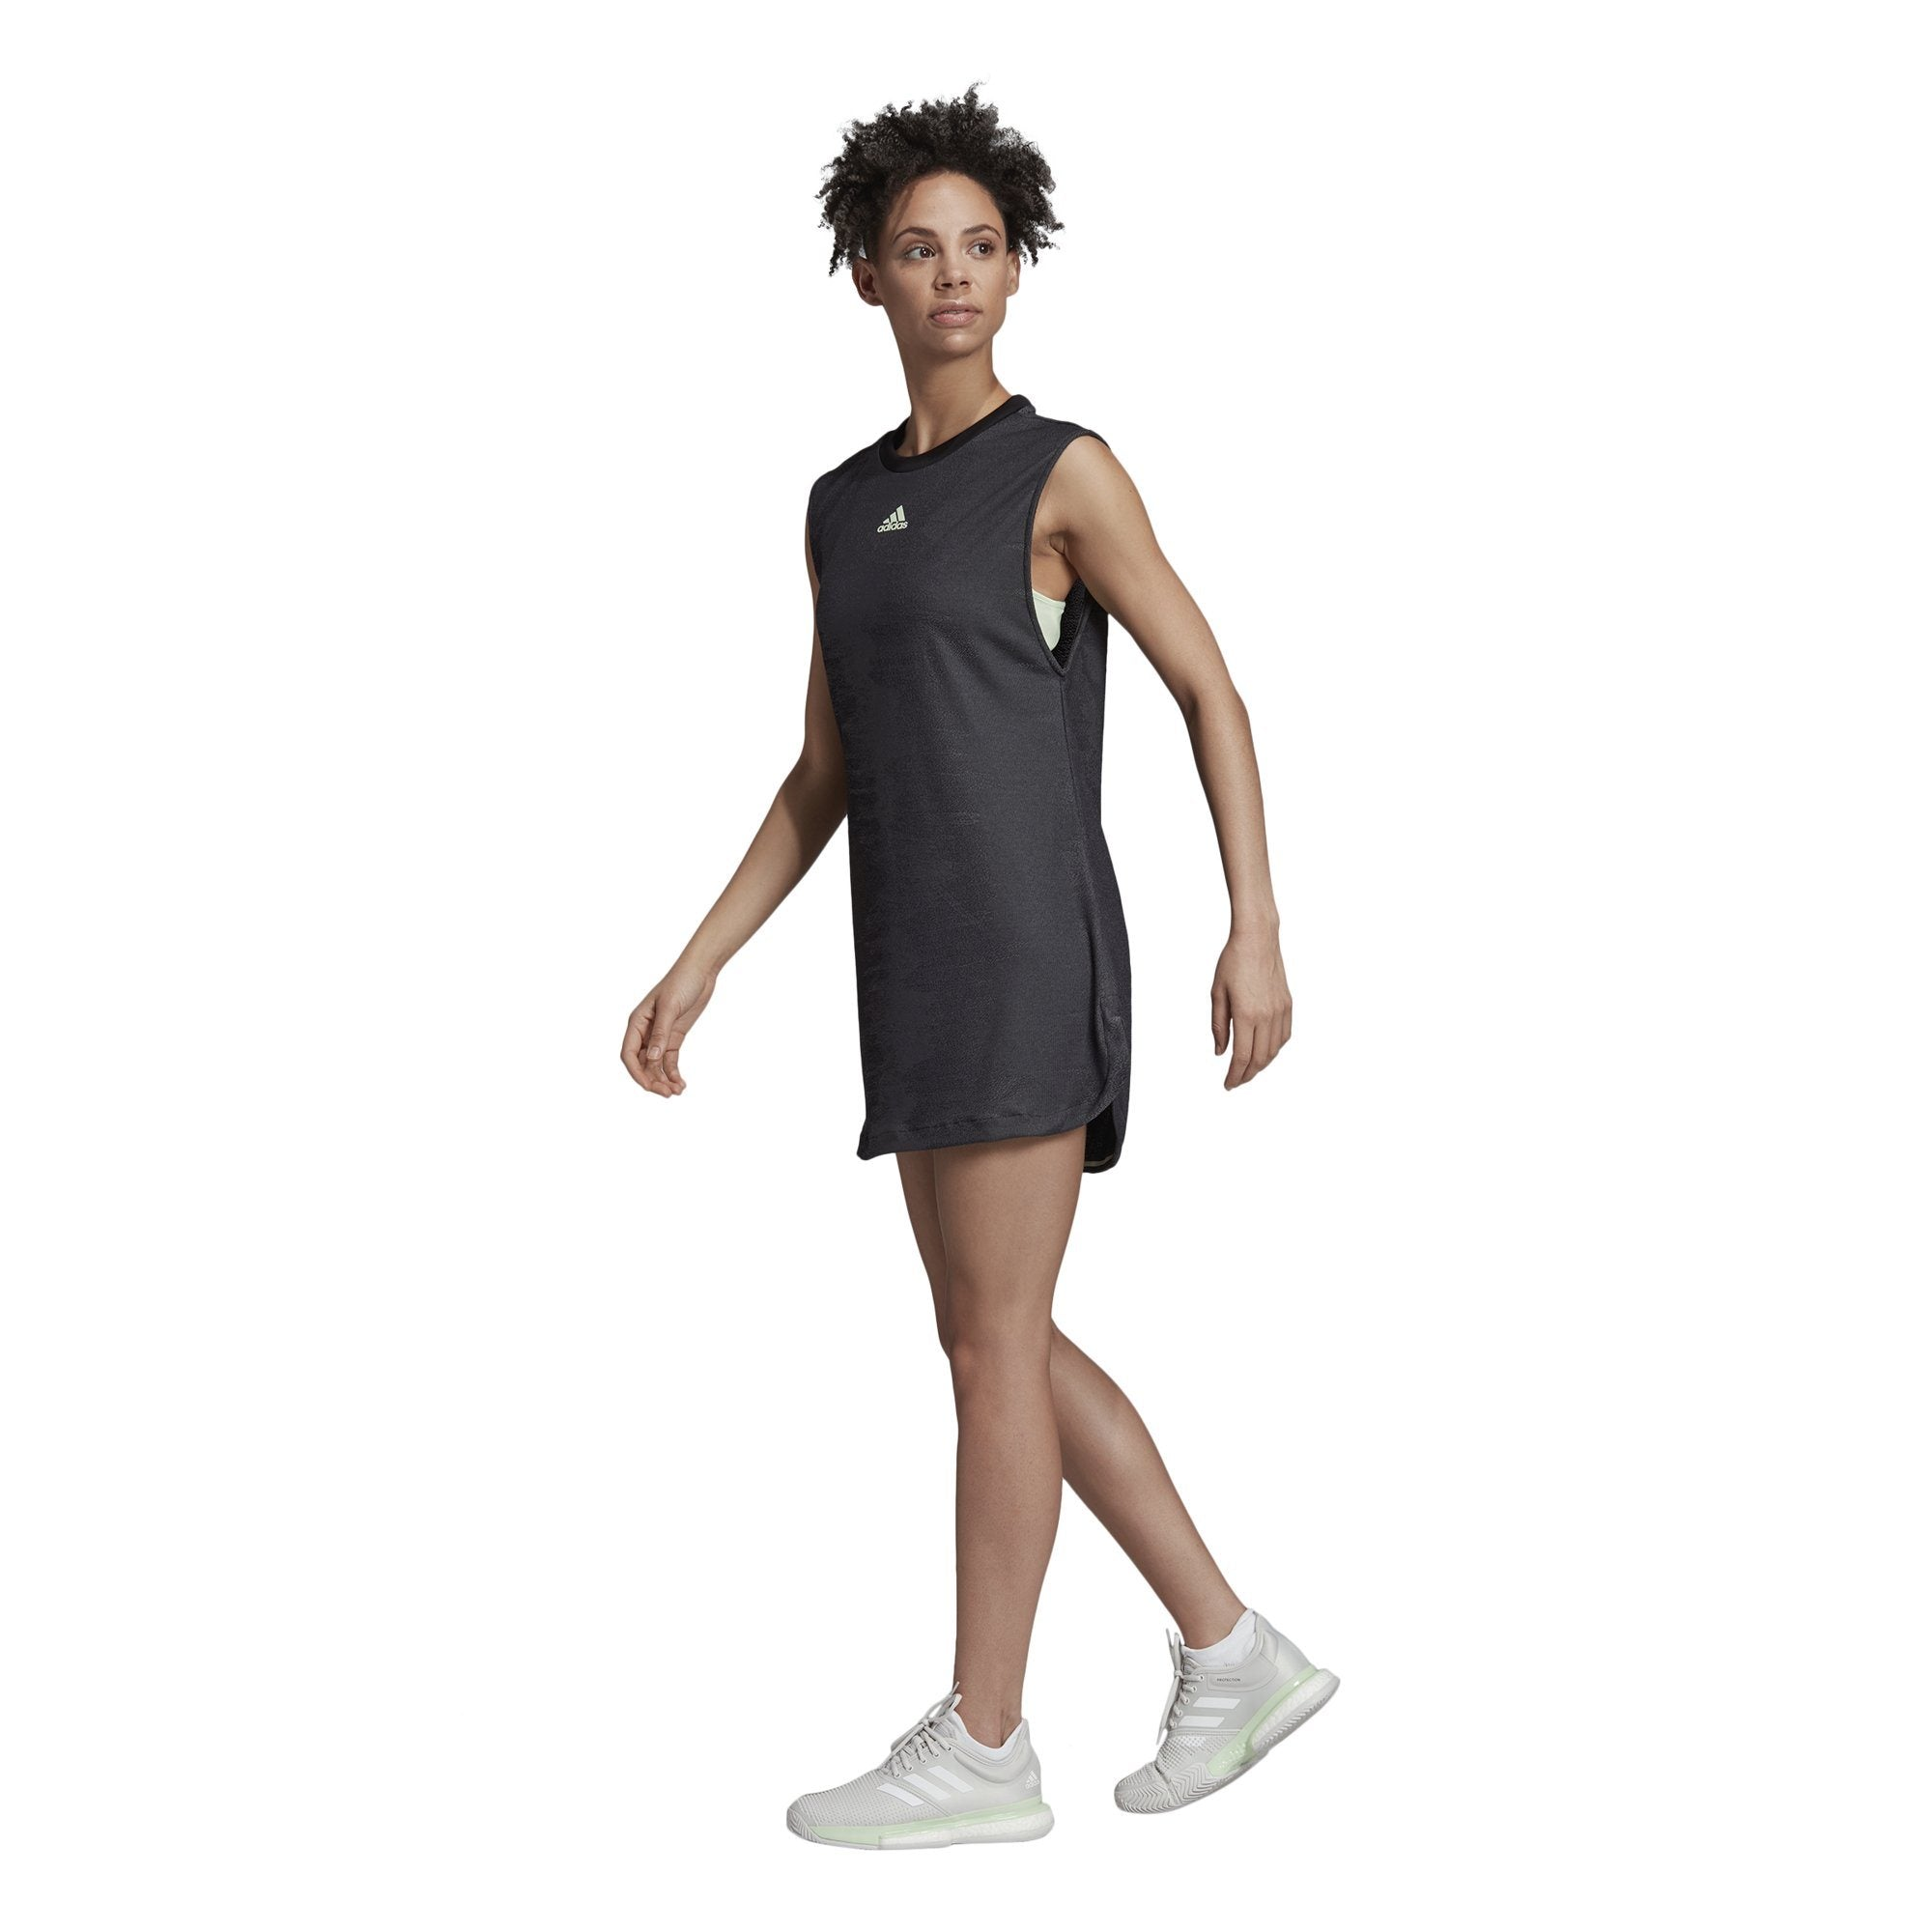 Adidas Womens New York Dress - black/glow green SP-APPARELDRESS-WOMENS Adidas